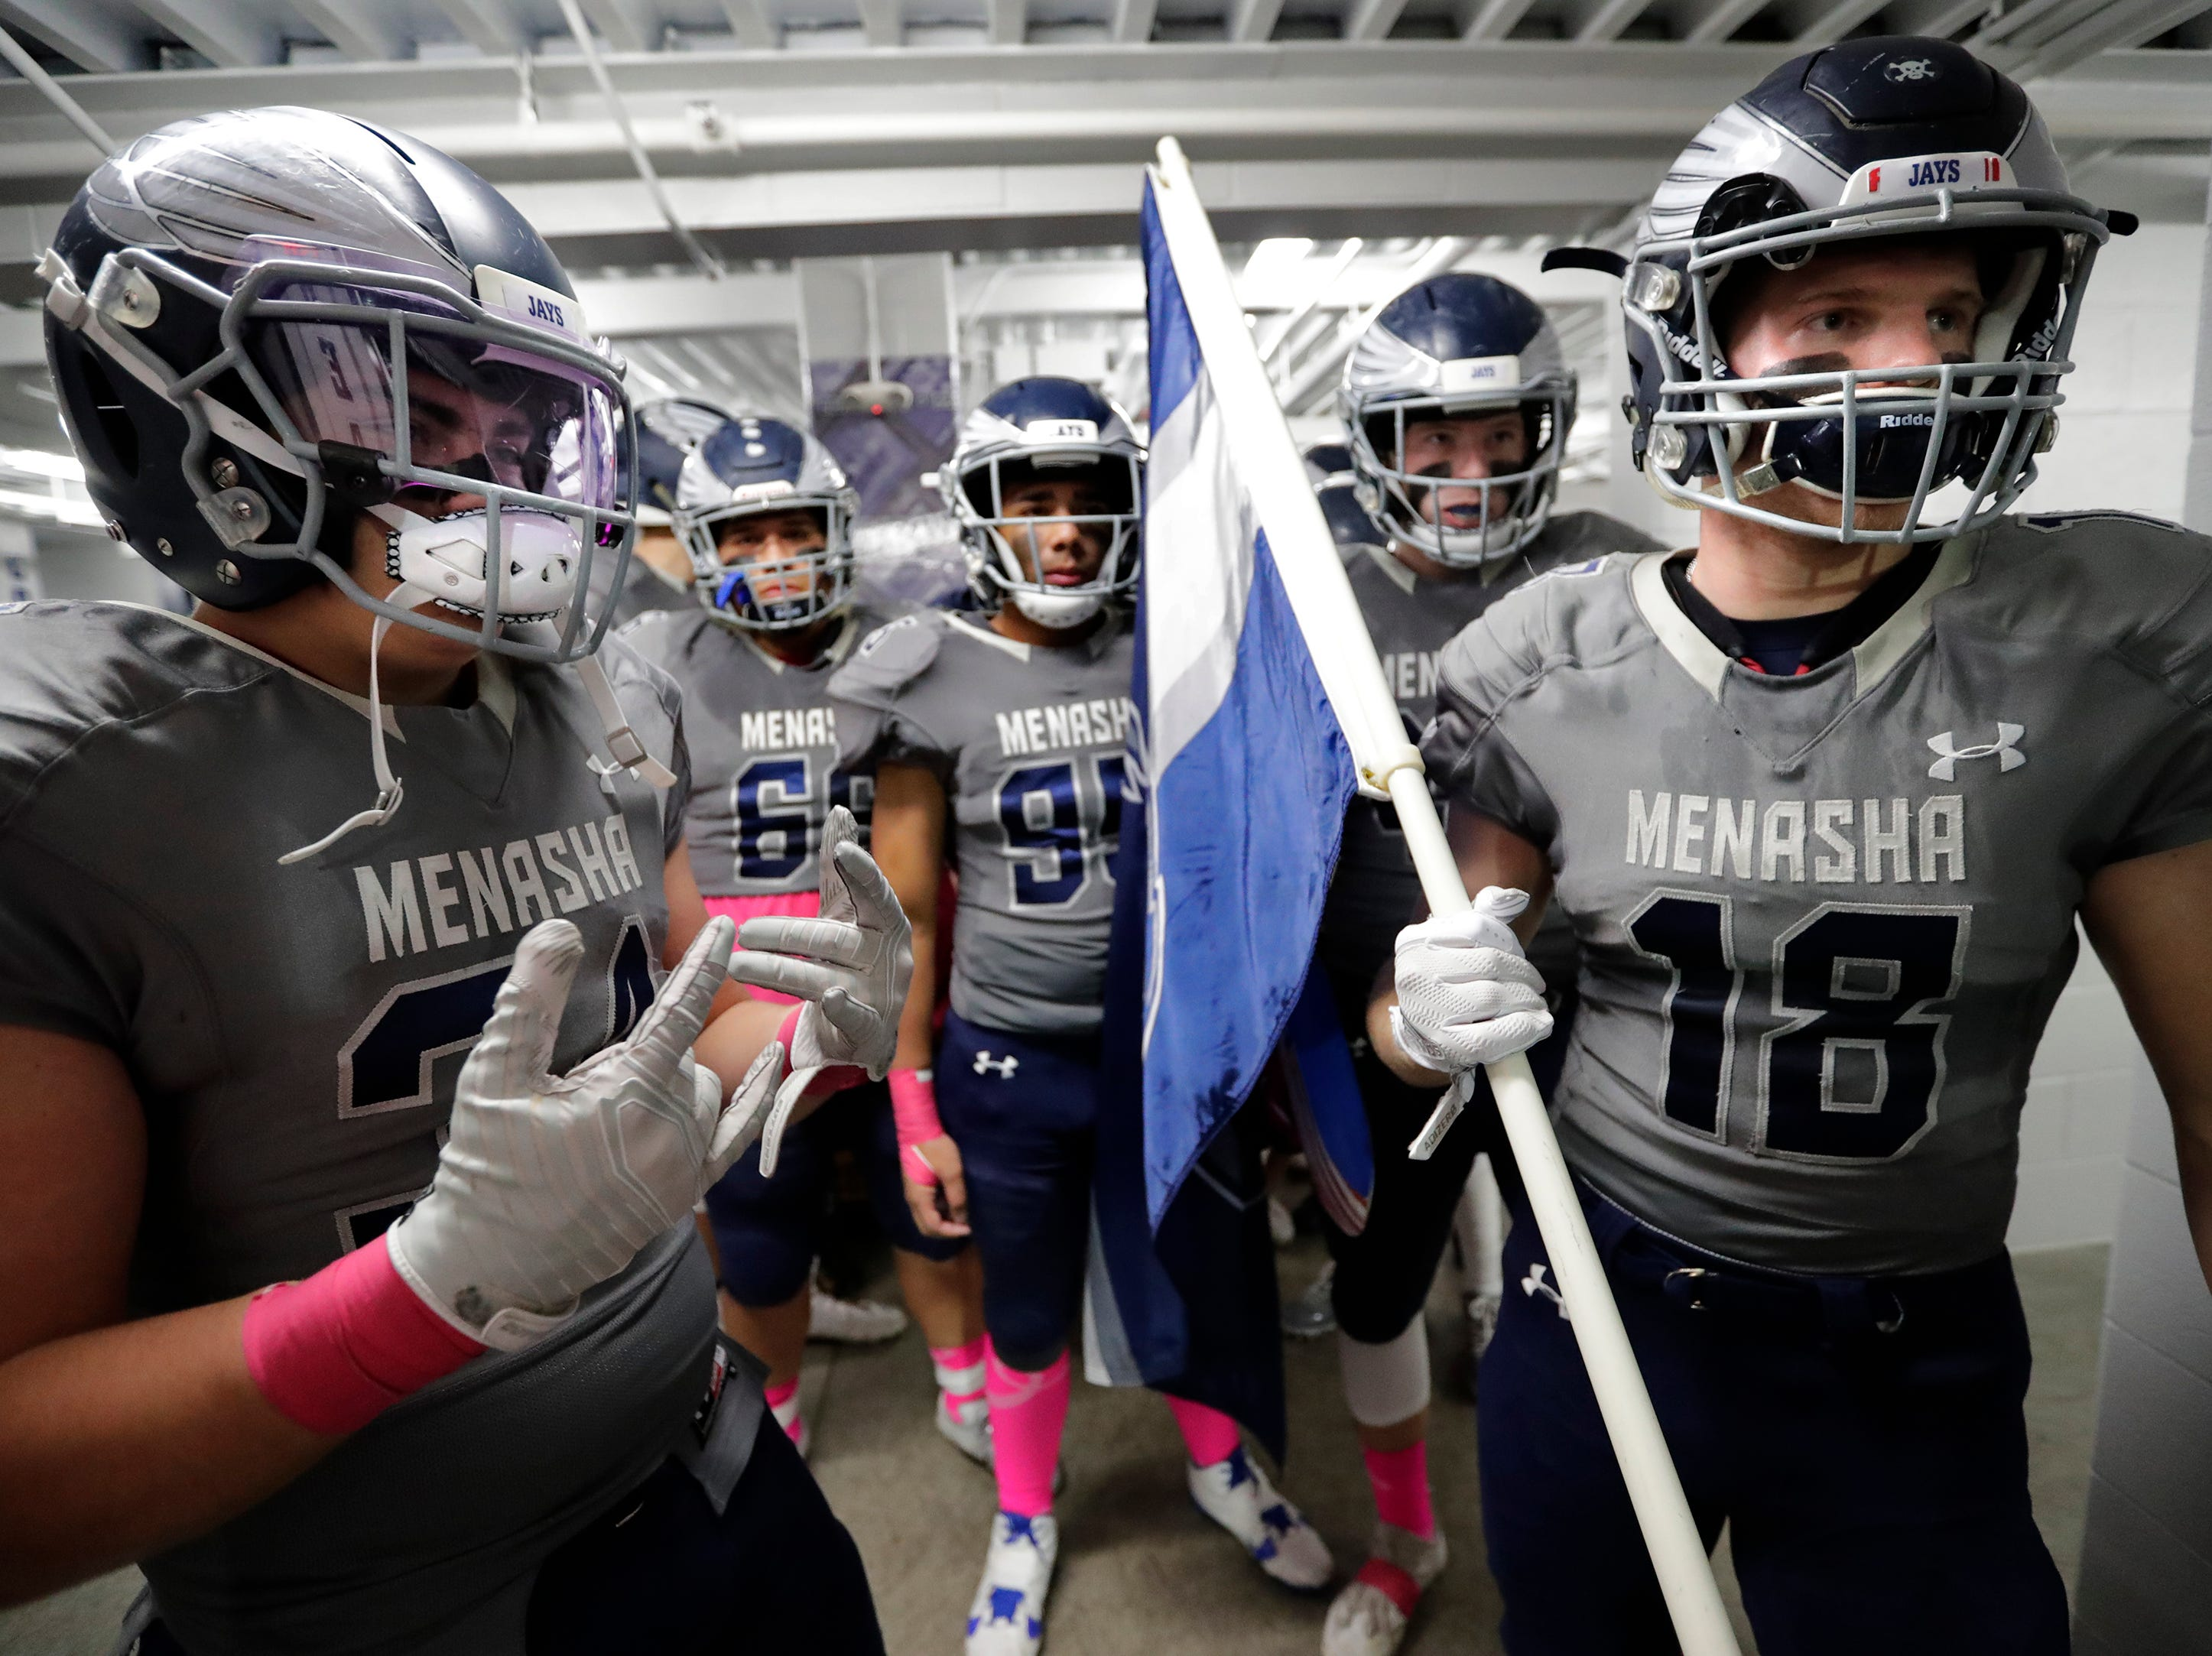 Menasha High School's Reece Racette (34) and Riley Zirpel (18) prepare to lead their team on to the field against Hortonville High School during their WIAA Division 2 football playoff game Friday, Oct. 19, 2018, at Calder Stadium in Menasha, Wis. 